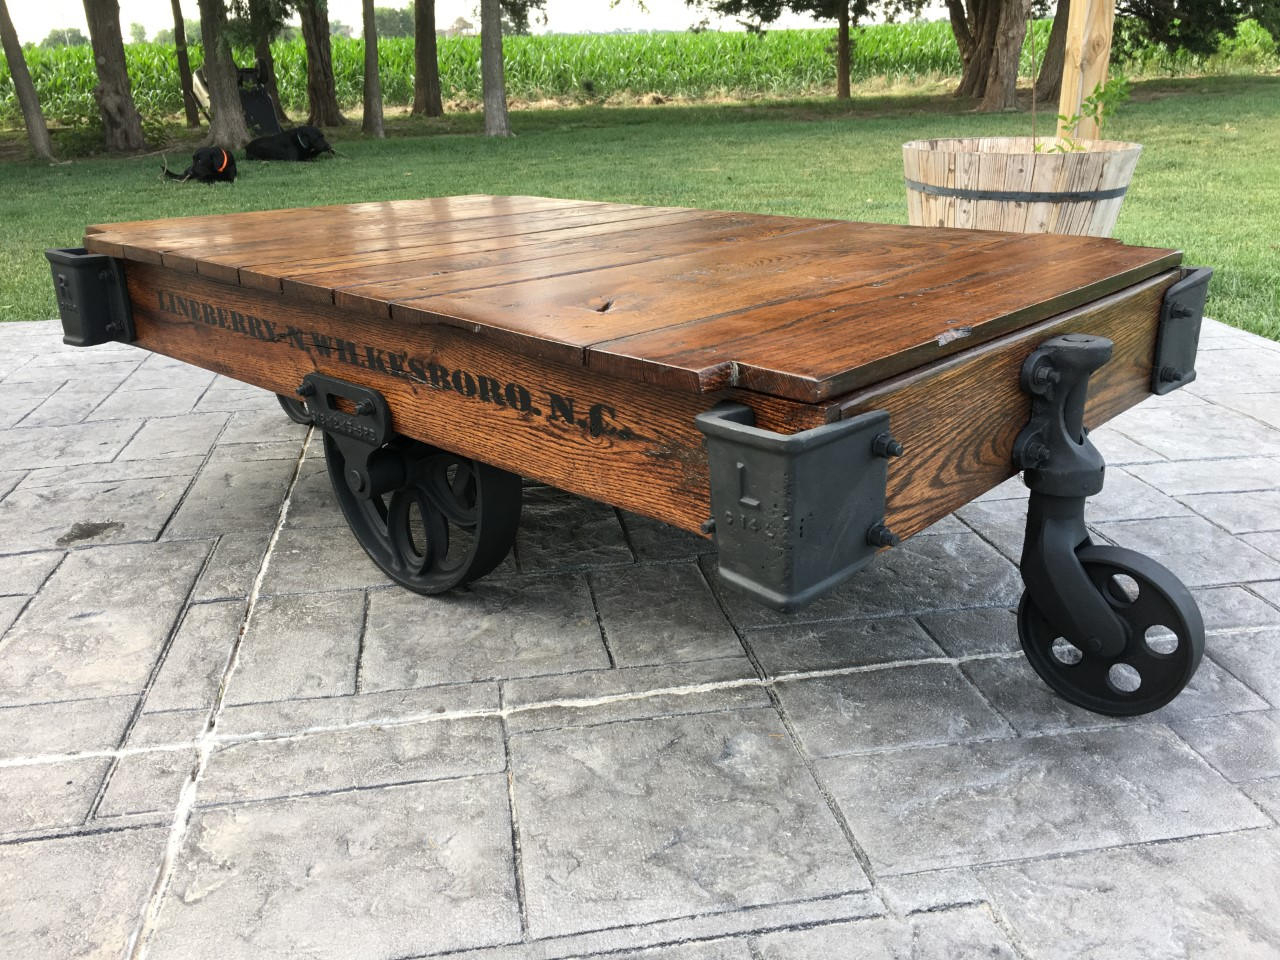 Linebery Factory Cart Railroad Cart Coffee Table Etsy pertaining to measurements 1280 X 960